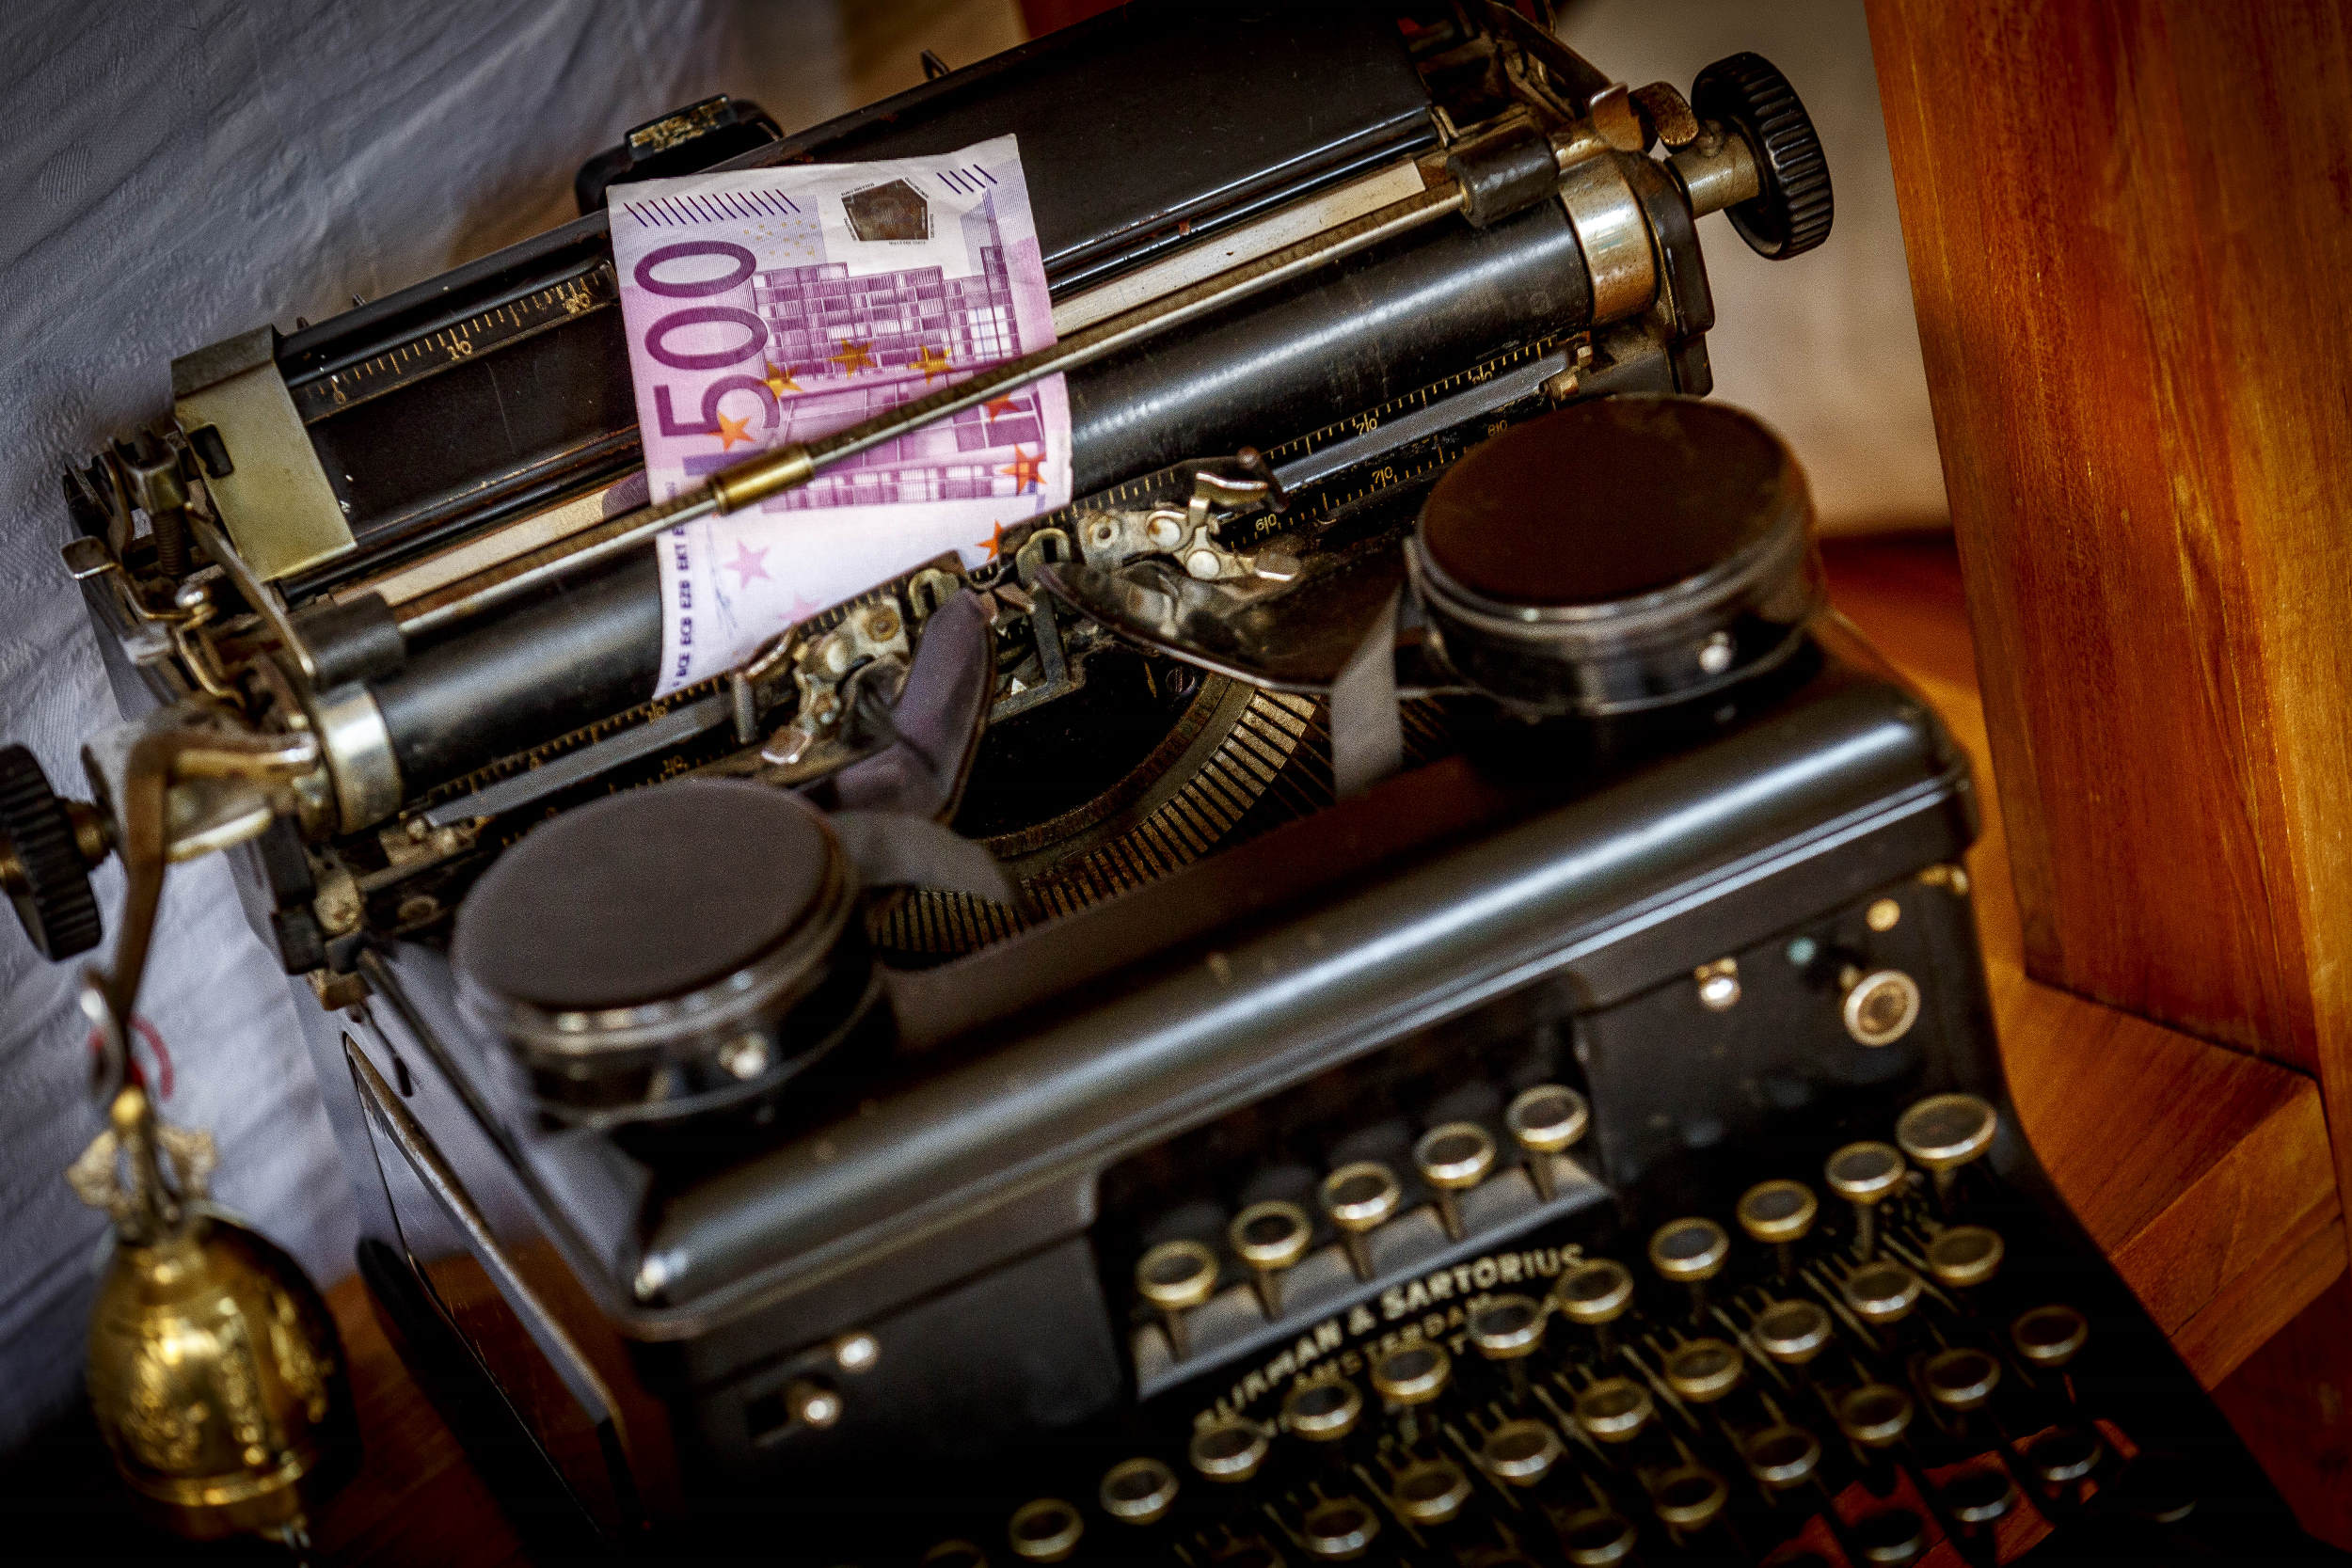 geld, money, bankbiljet, banknote, economie, economy, sparen, financieel, financial, typemachine, typewriter